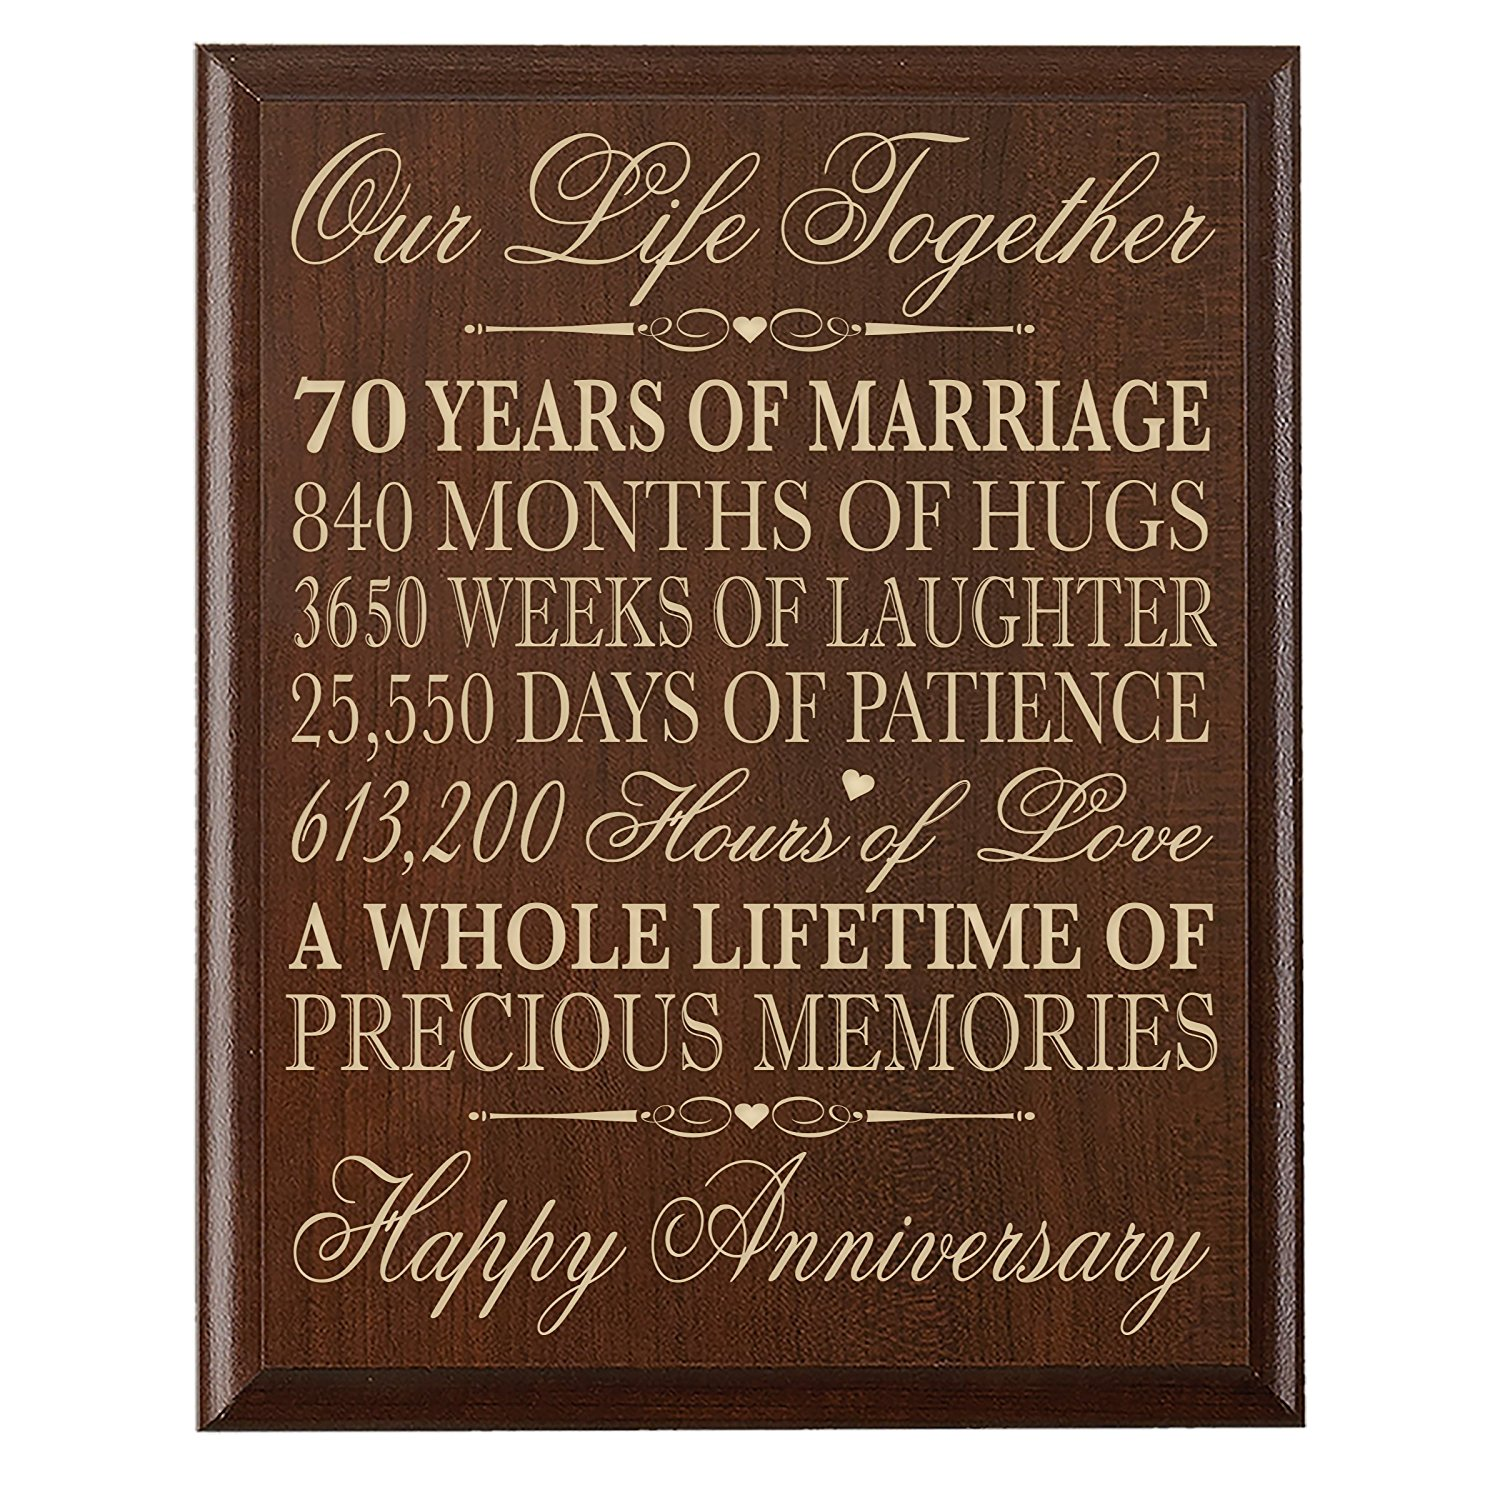 70 Year Wedding Anniversary Gifts: 70th Wedding Anniversary Wall Plaque Gifts For Couple